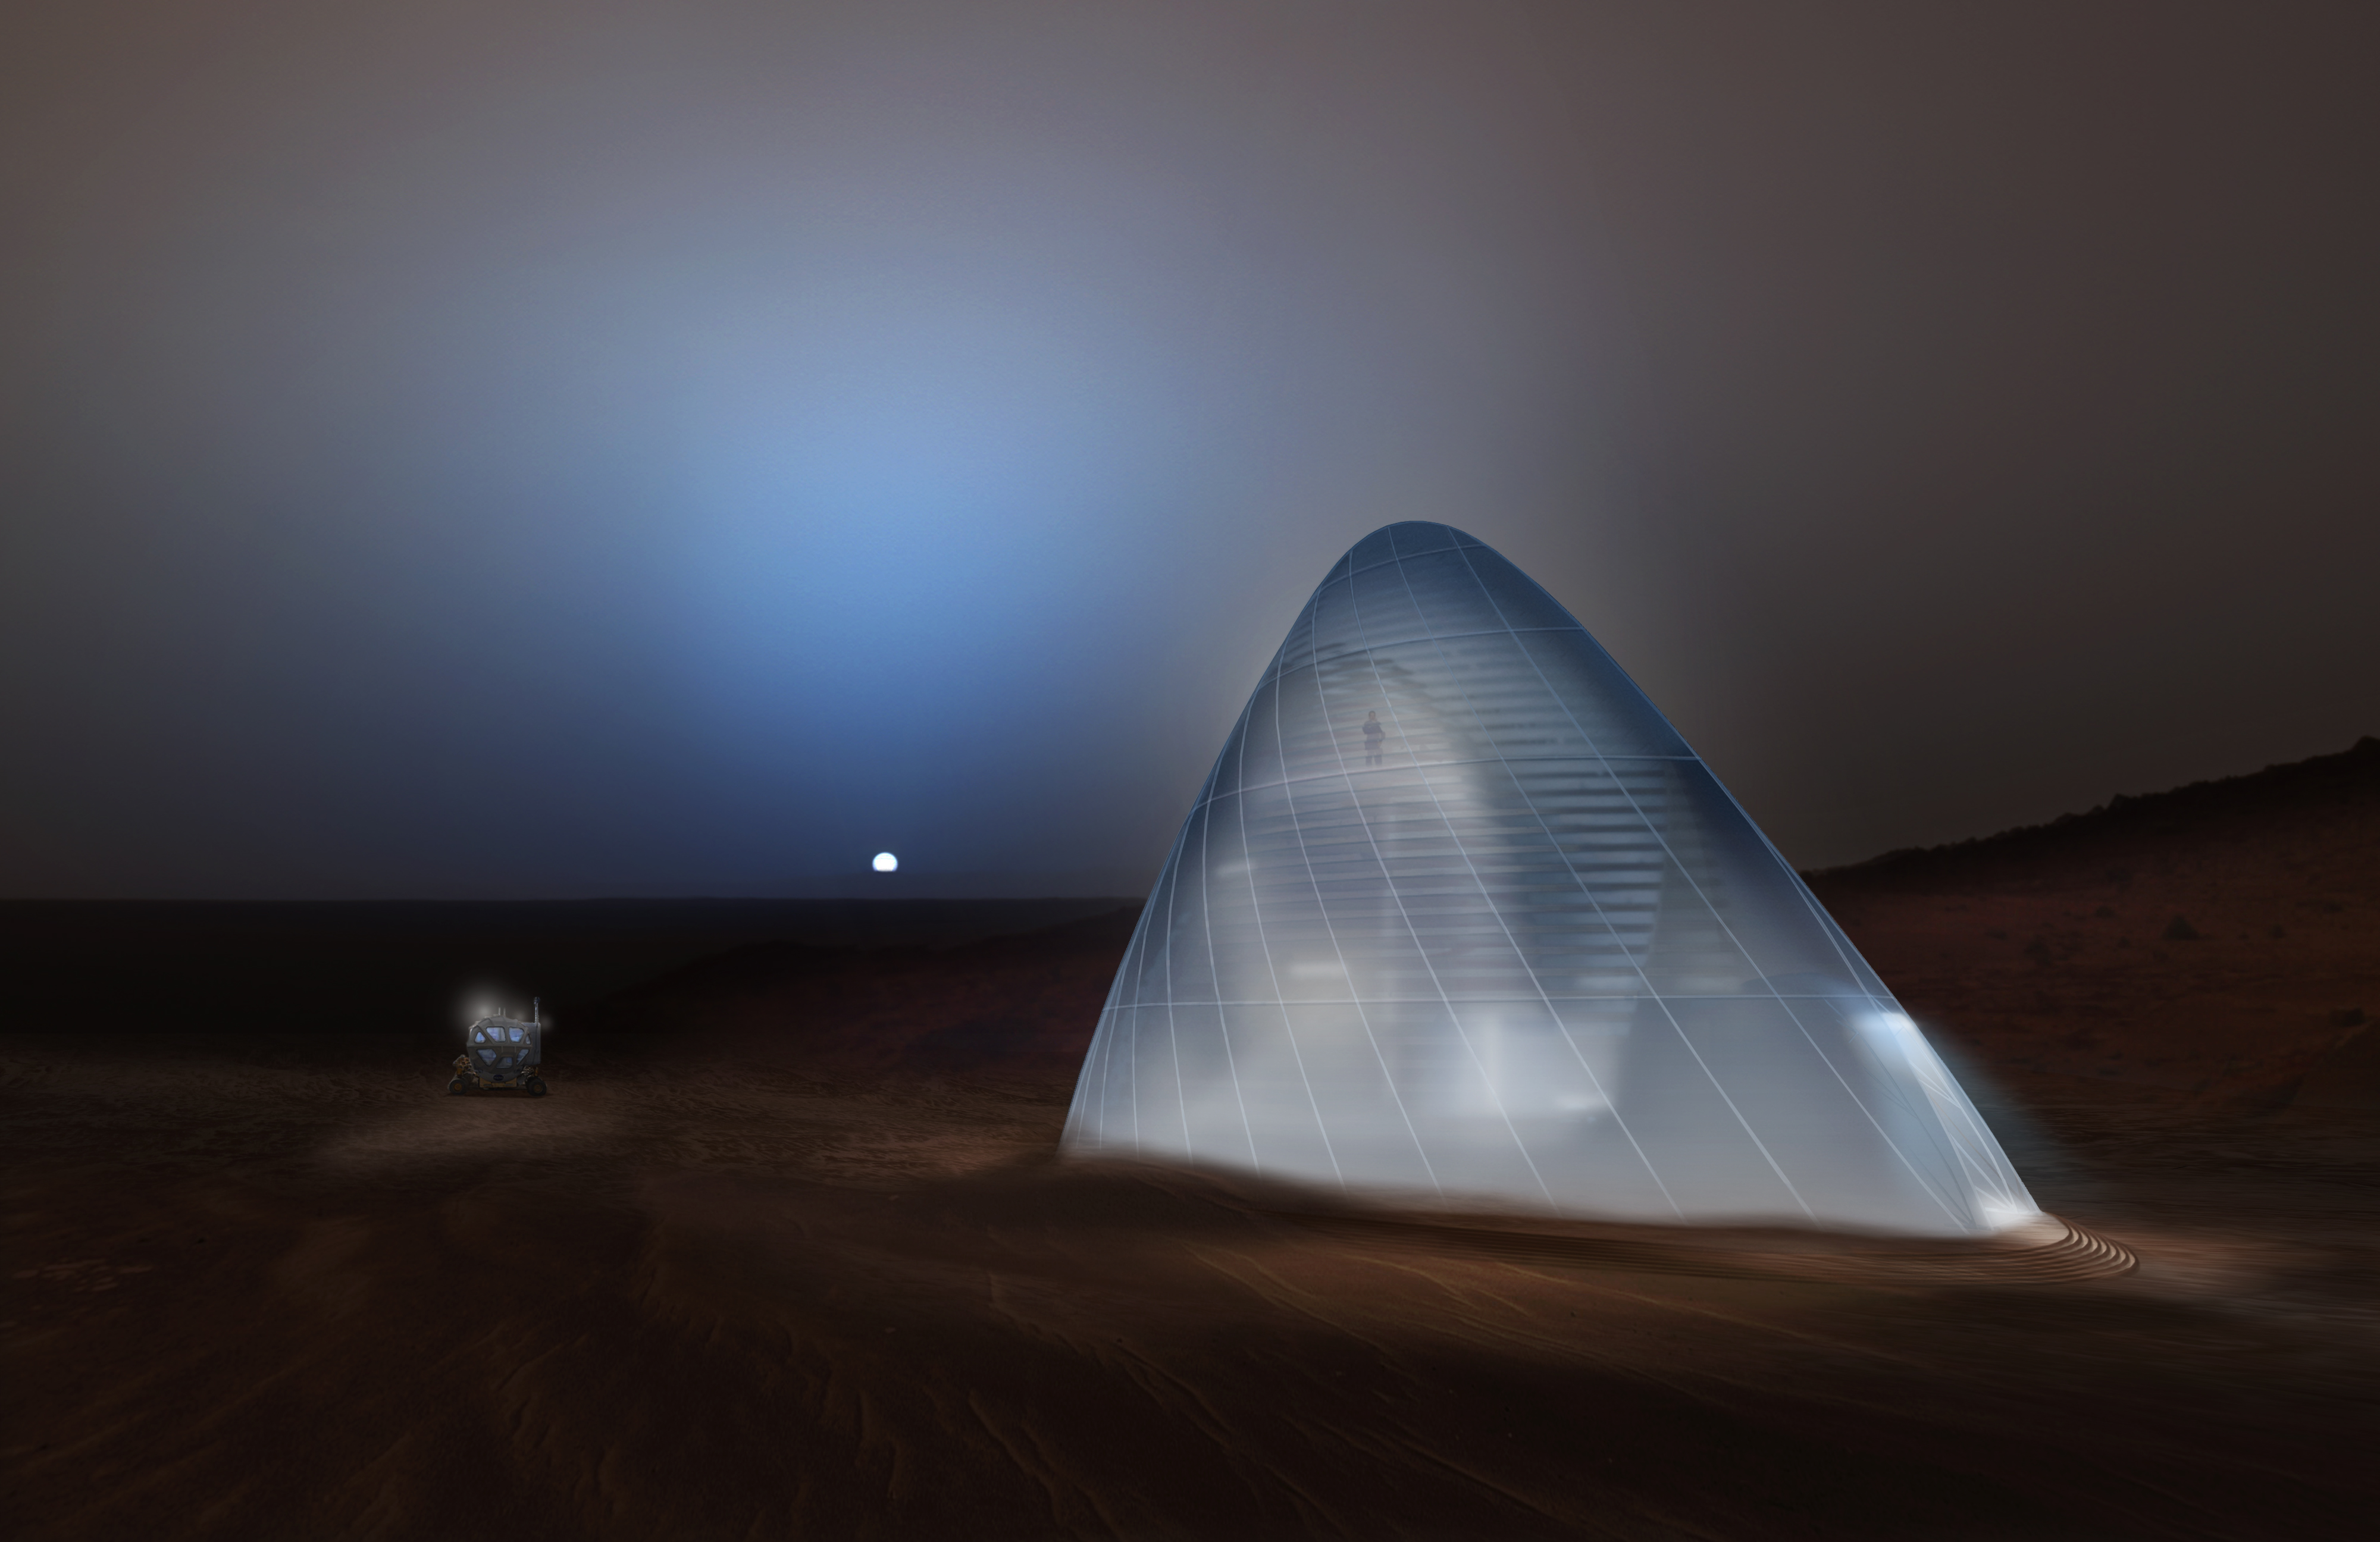 NASA Picks Winners for 3D-Printed Mars Habitat Design Contest